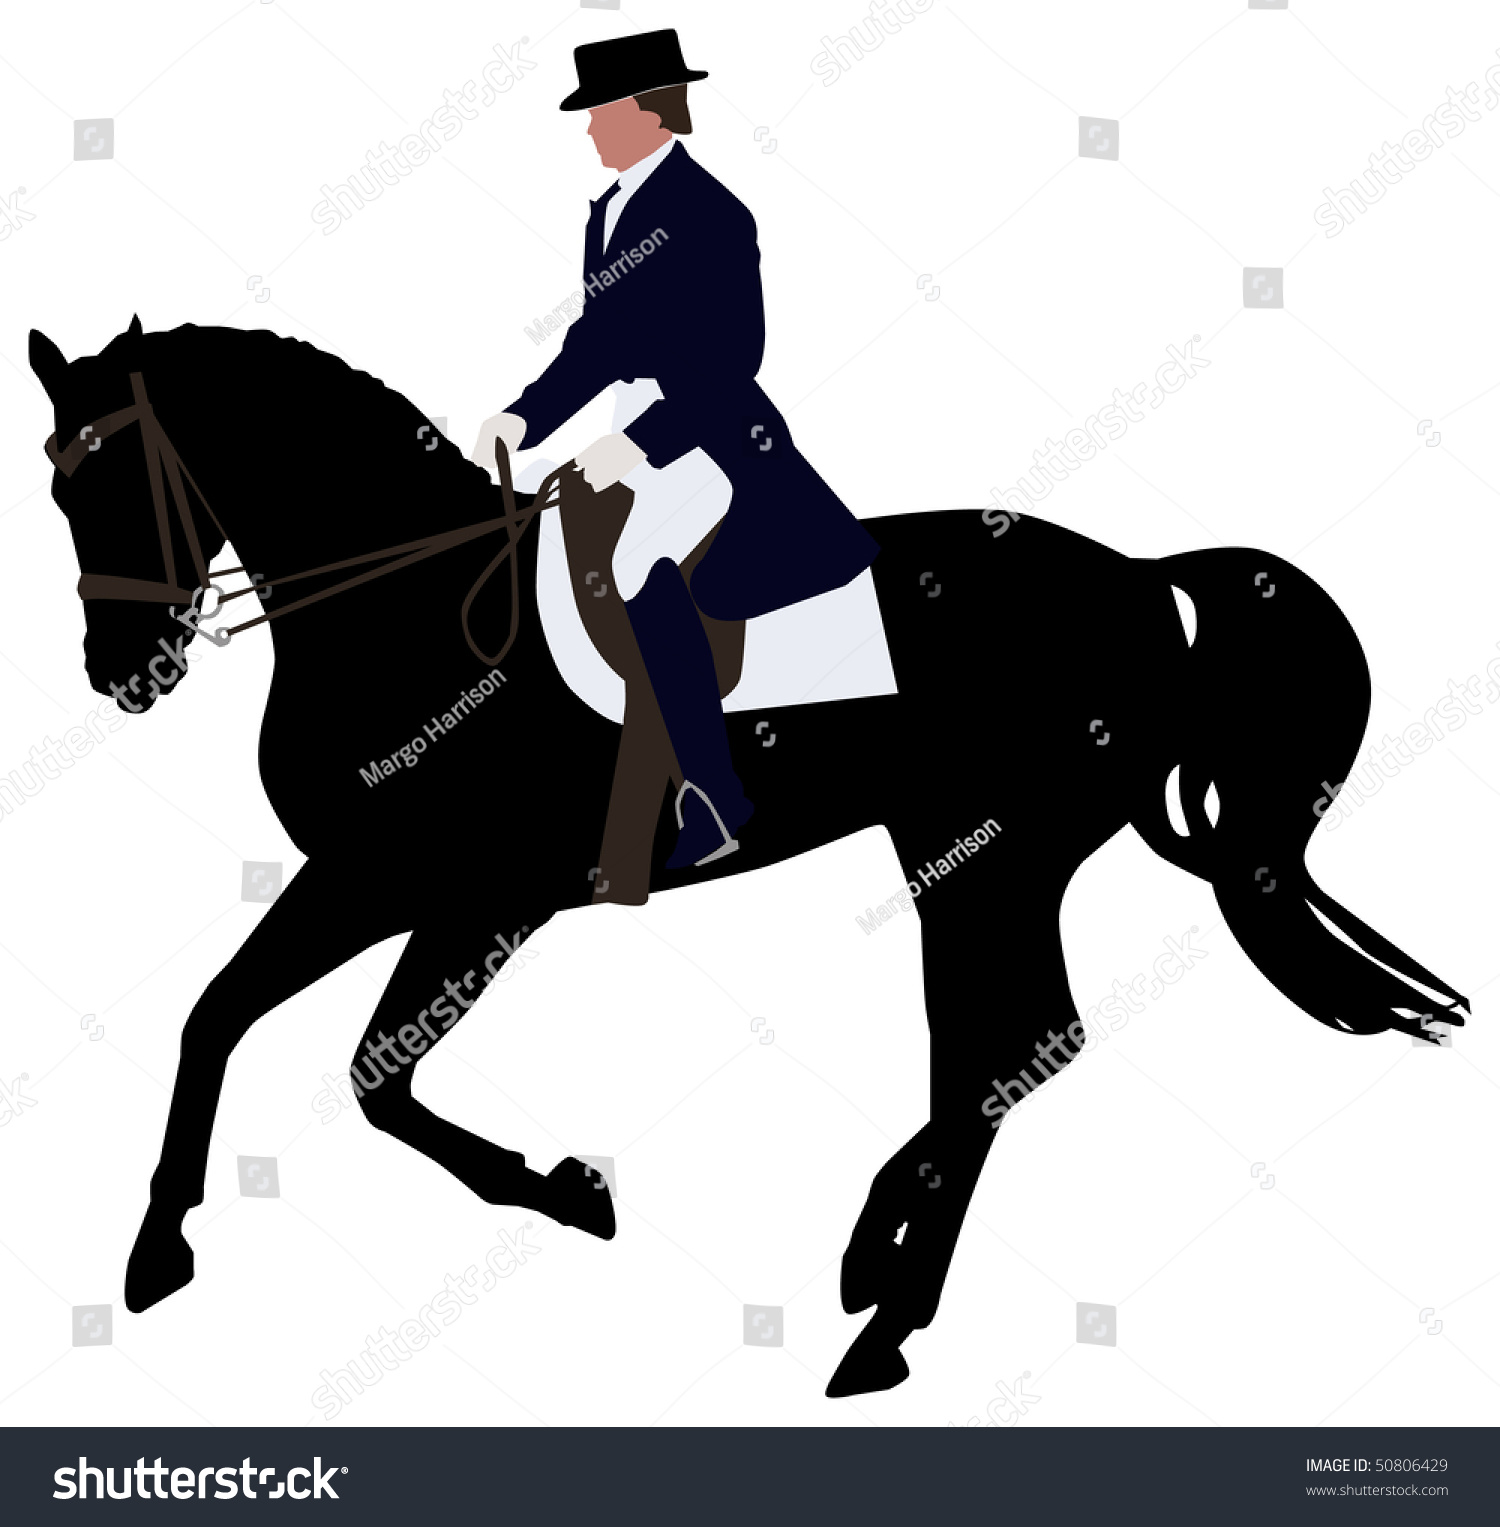 Silhouette Of A Dressage Horse In A Canter Stock Vector Illustration ...